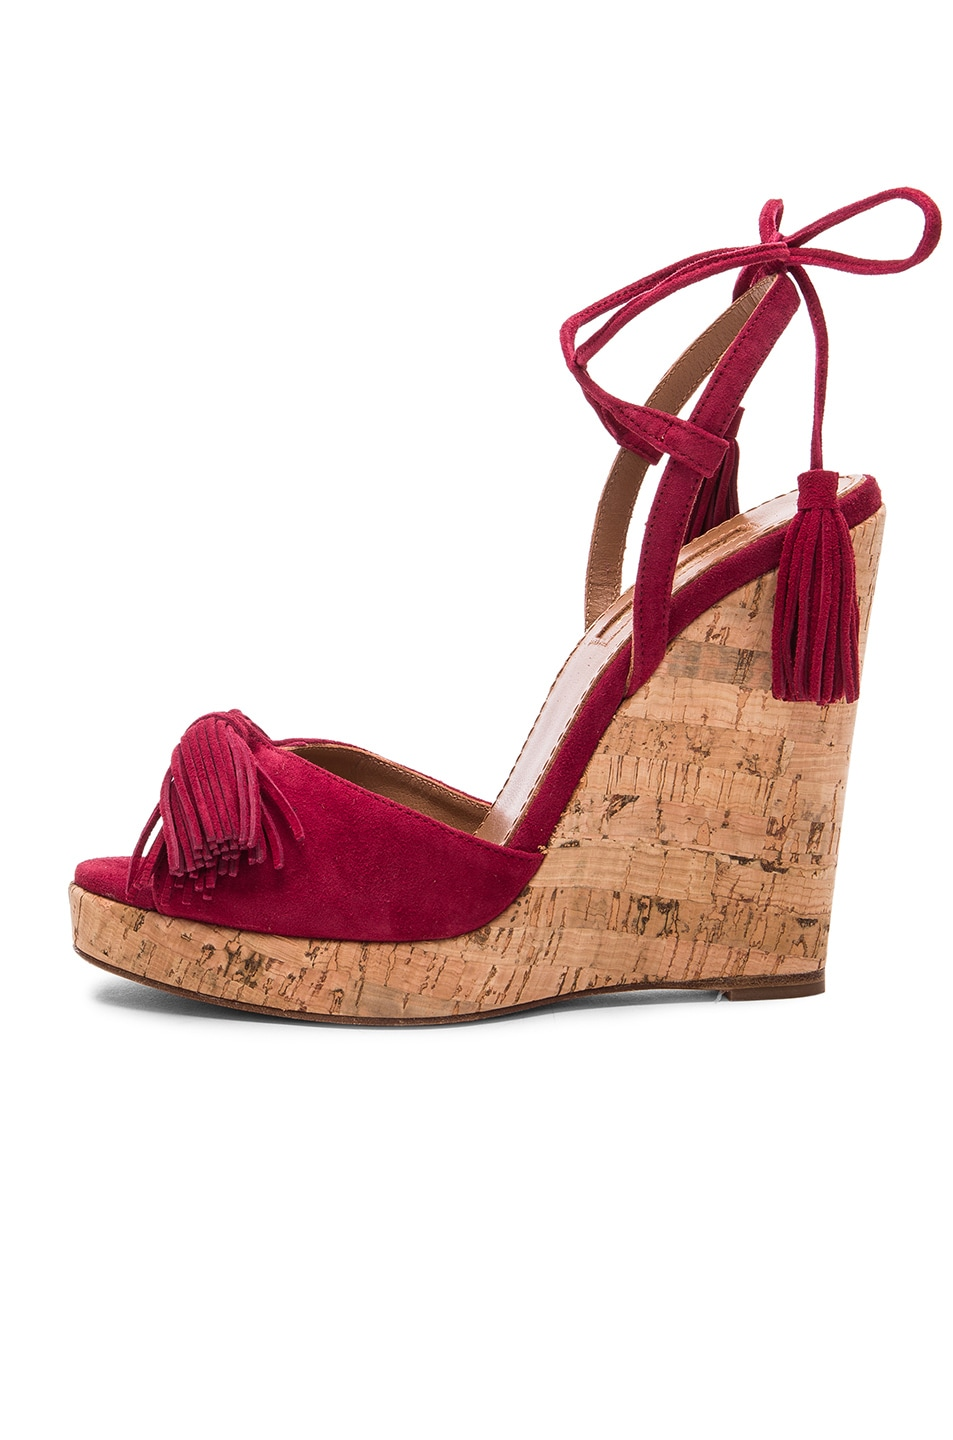 2723dd09ede Aquazzura Suede Wild One Espadrille Wedges in Pomegranate | FWRD